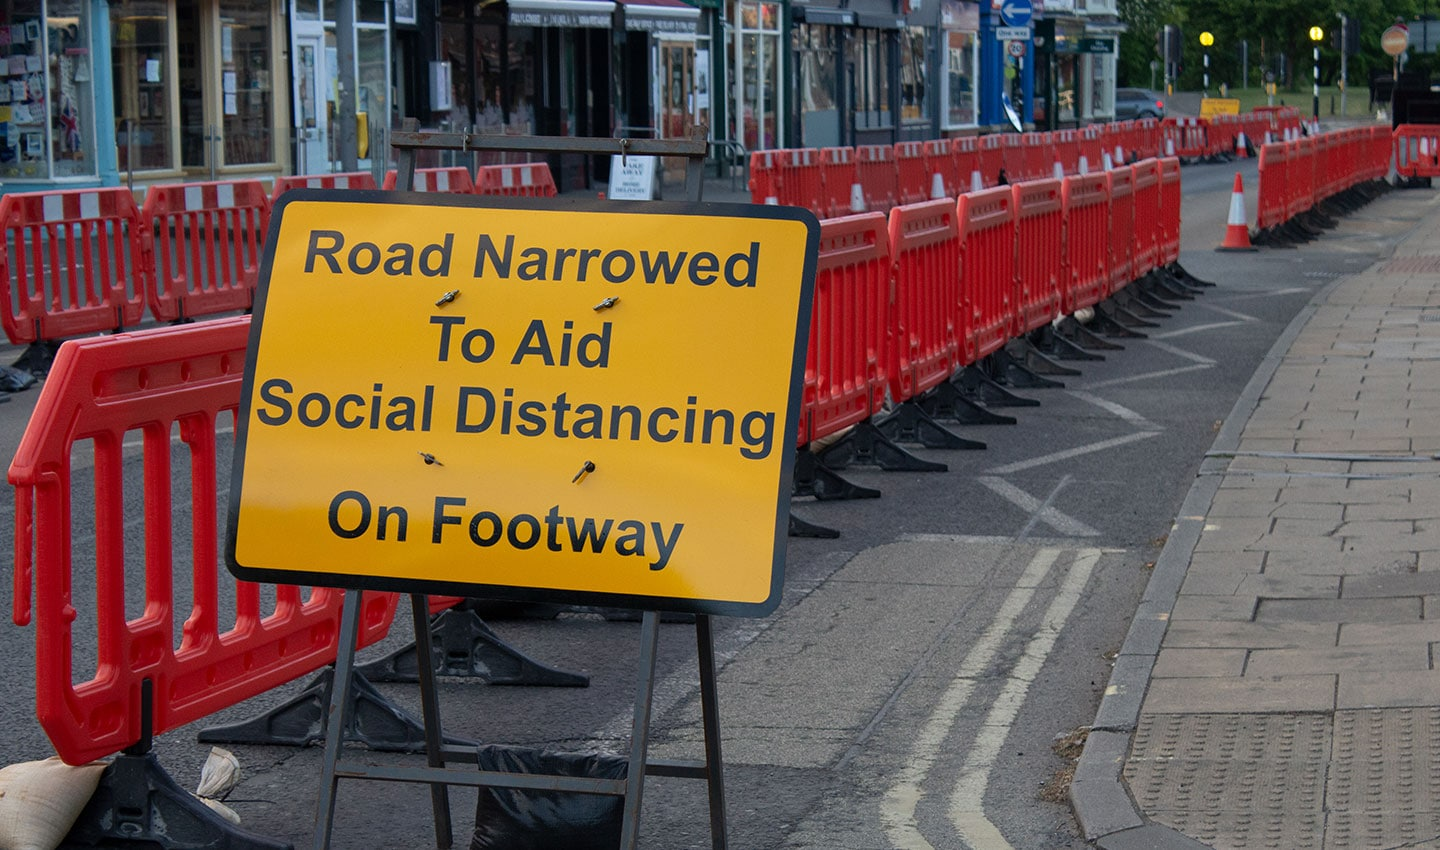 A sign in the UK informs citizens that a road is half closed to allow enough social distancing space for pedestrians.